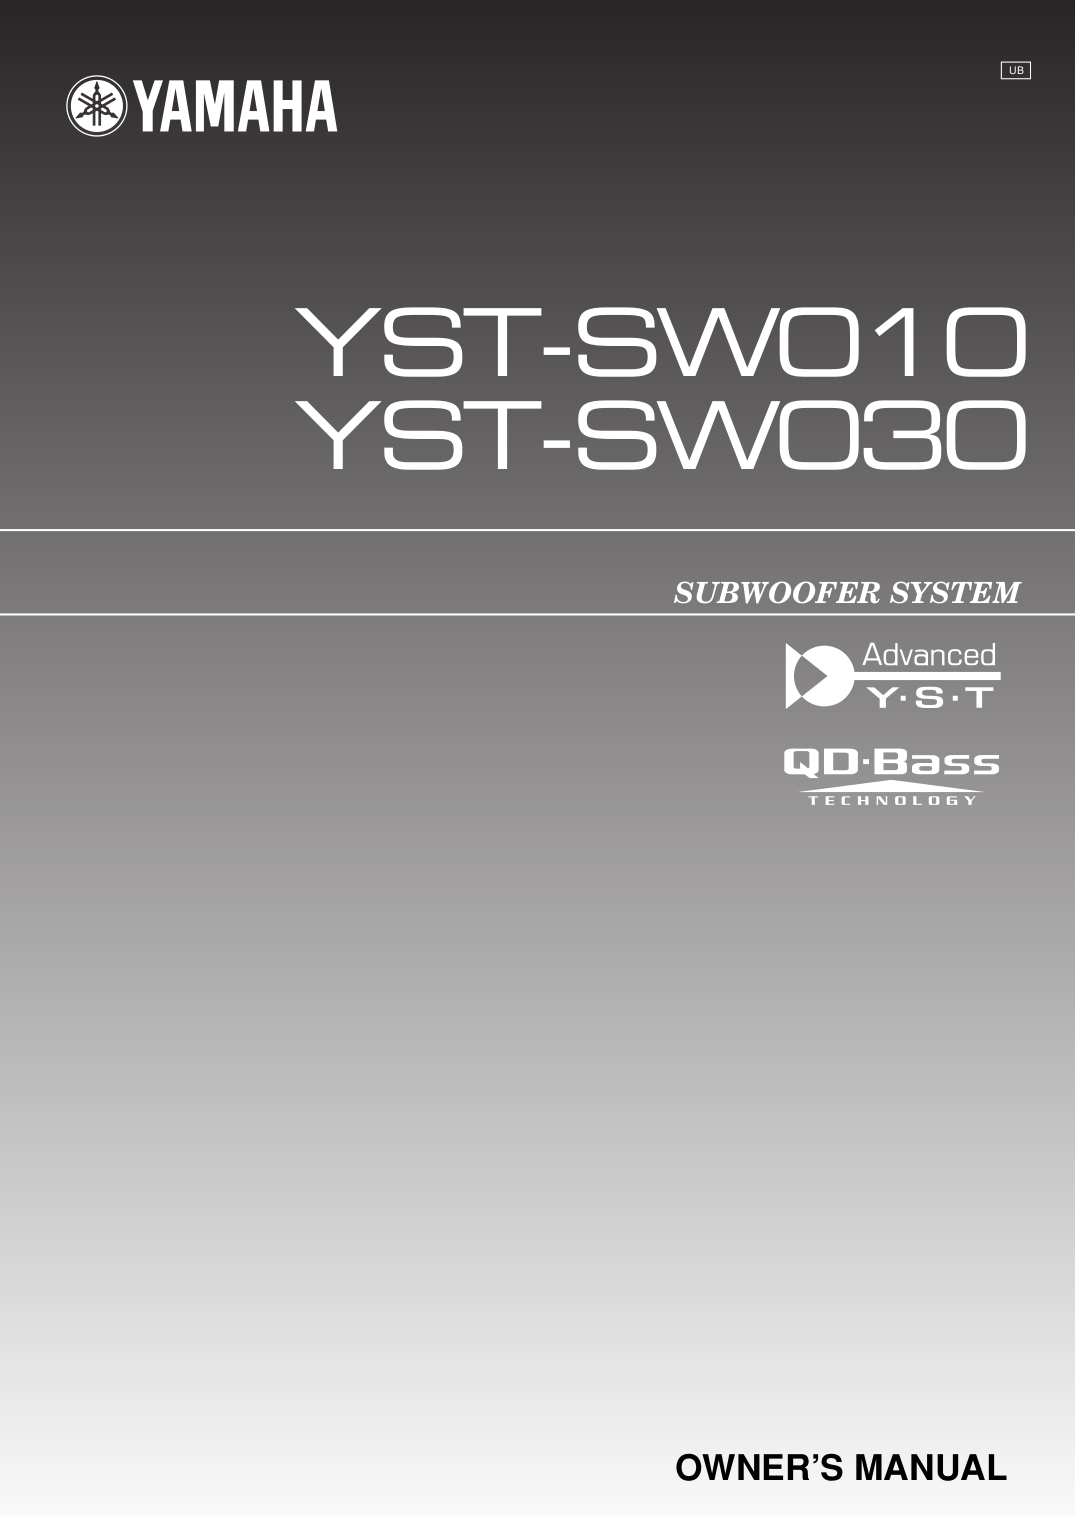 pdf for Yamaha Subwoofer YST-SW030 manual